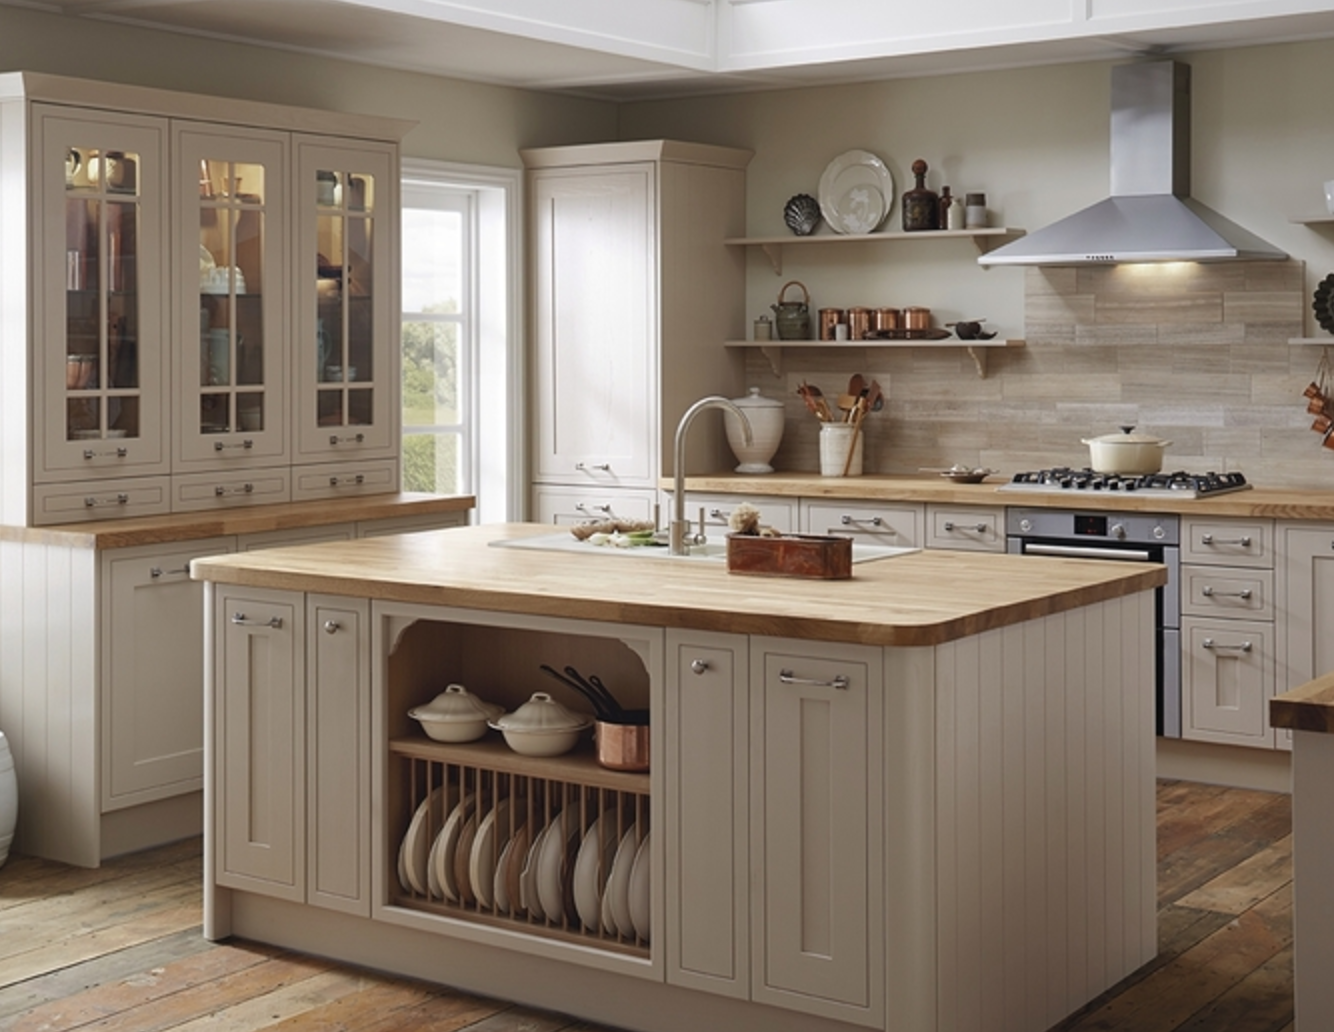 How To Design And Order A New Kitchen And Why We Re Opting